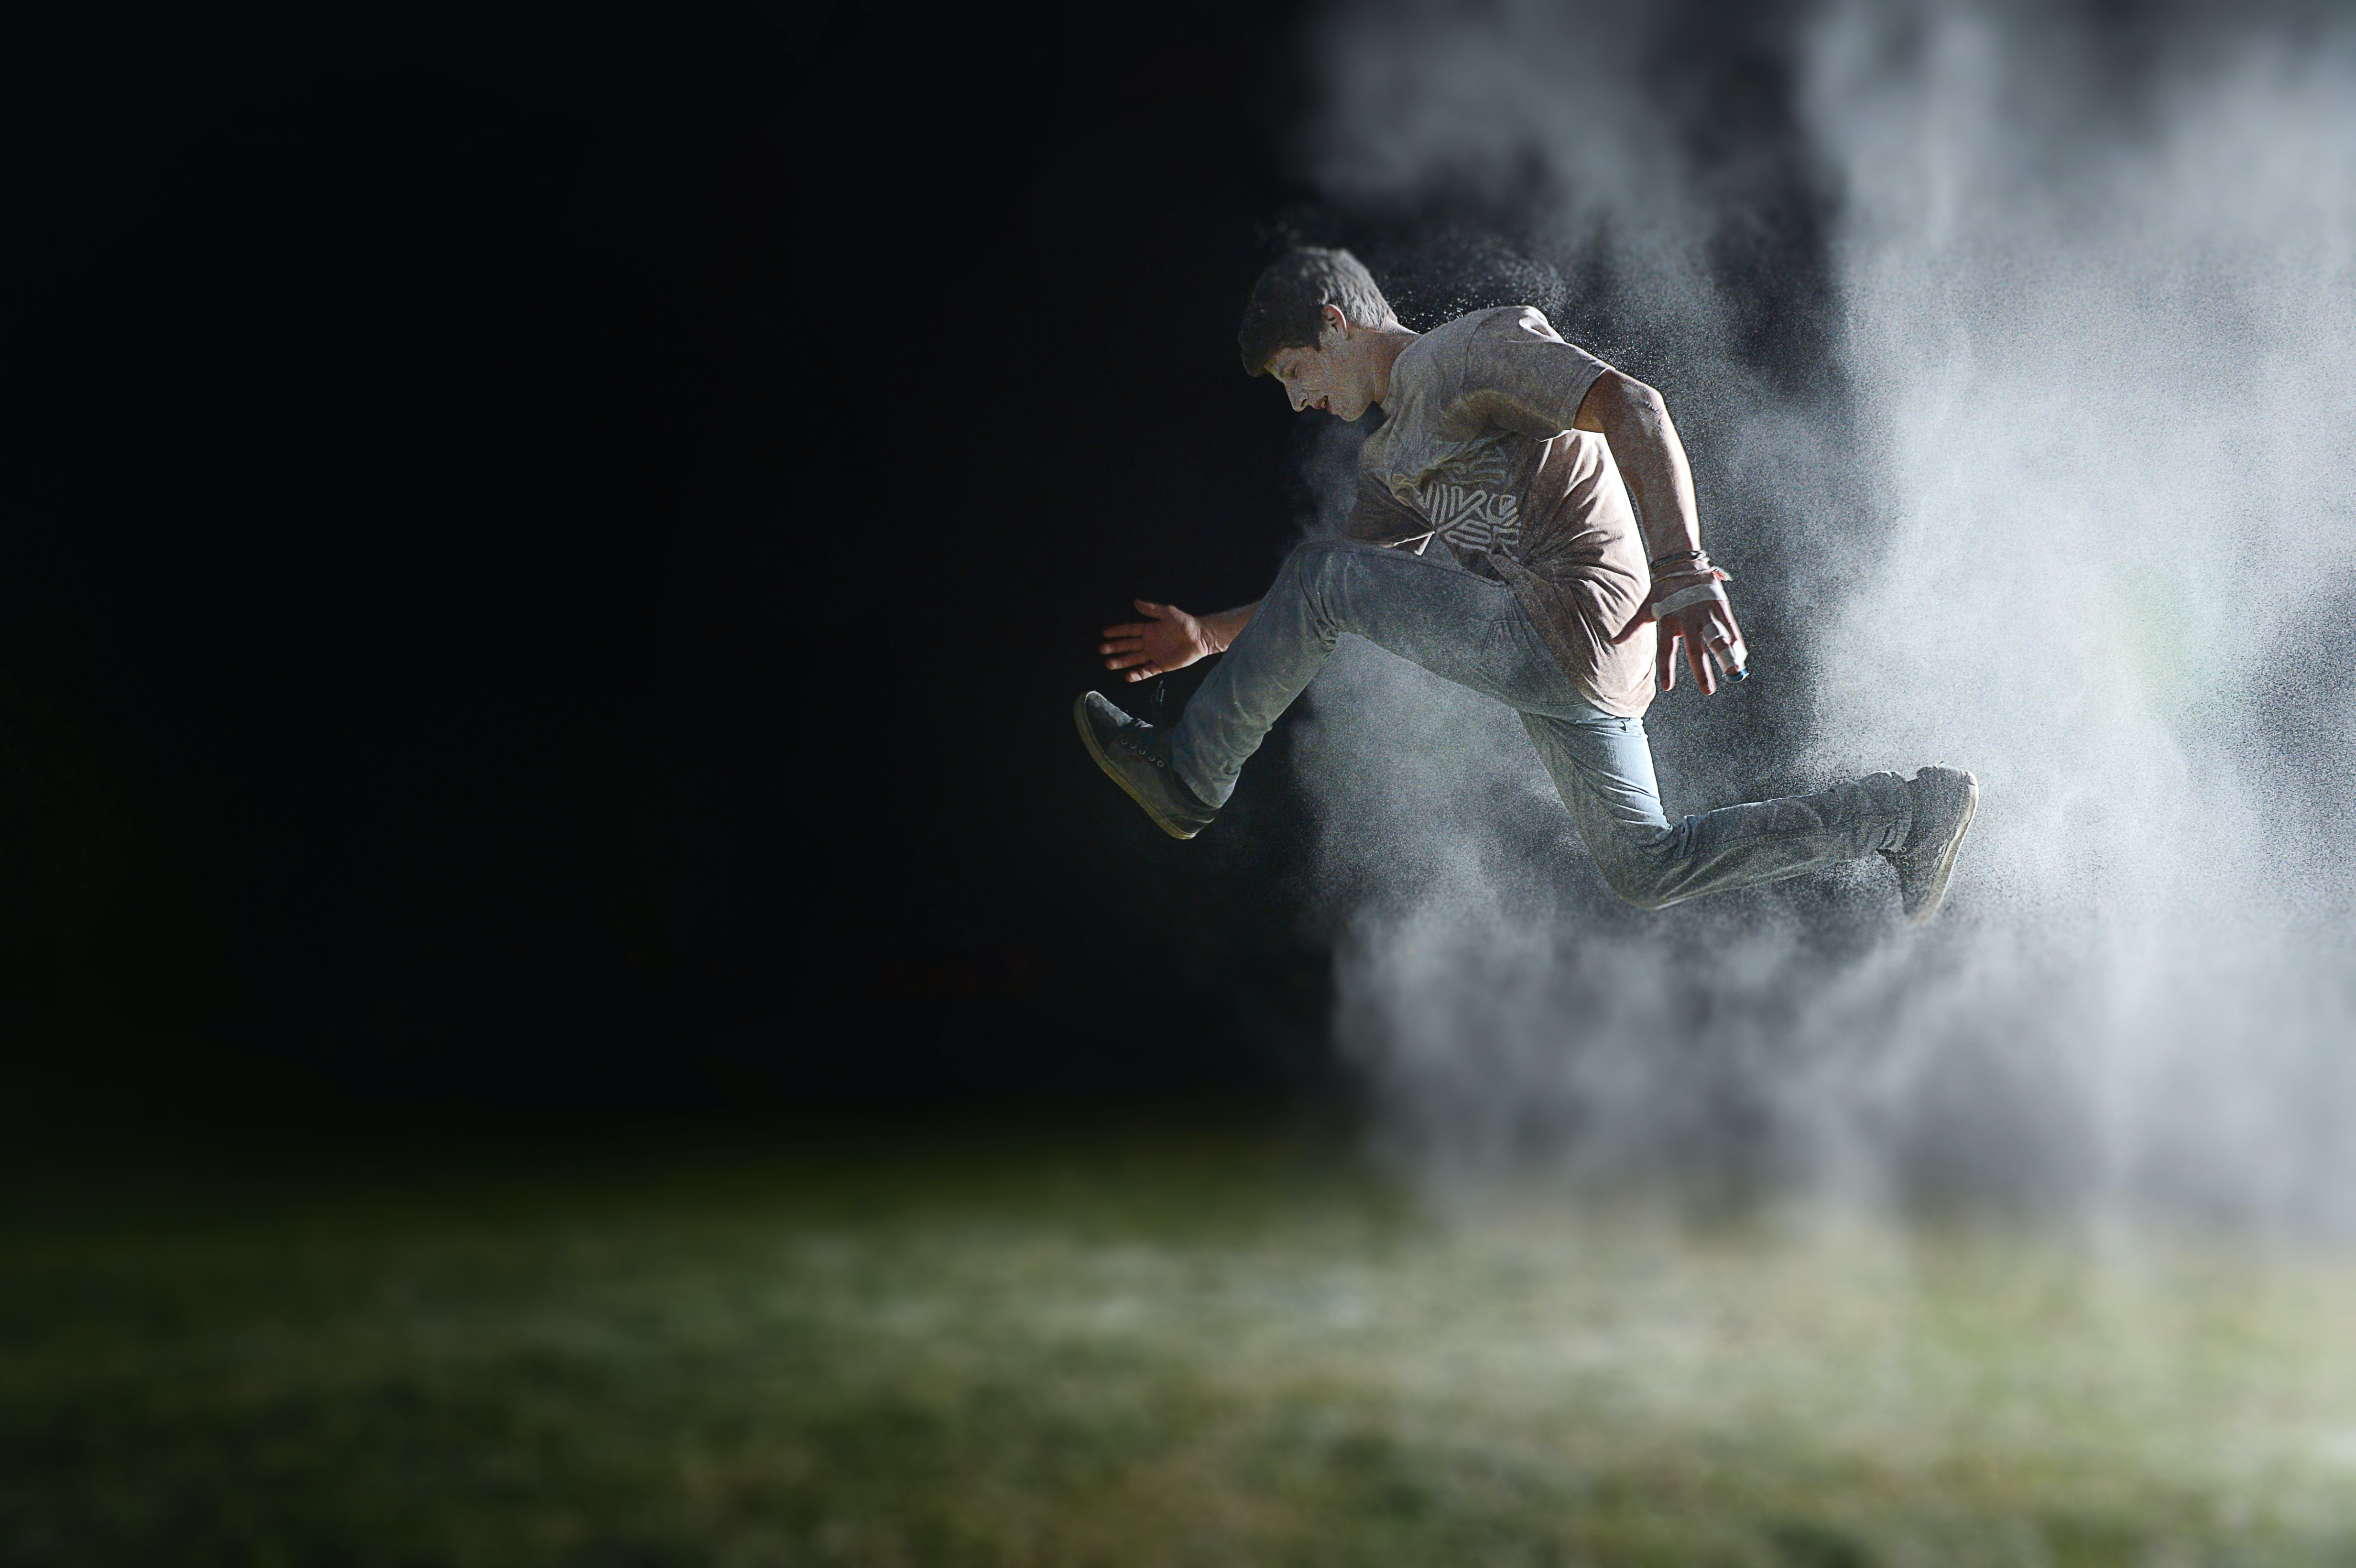 man in gray shirt jumping during night time